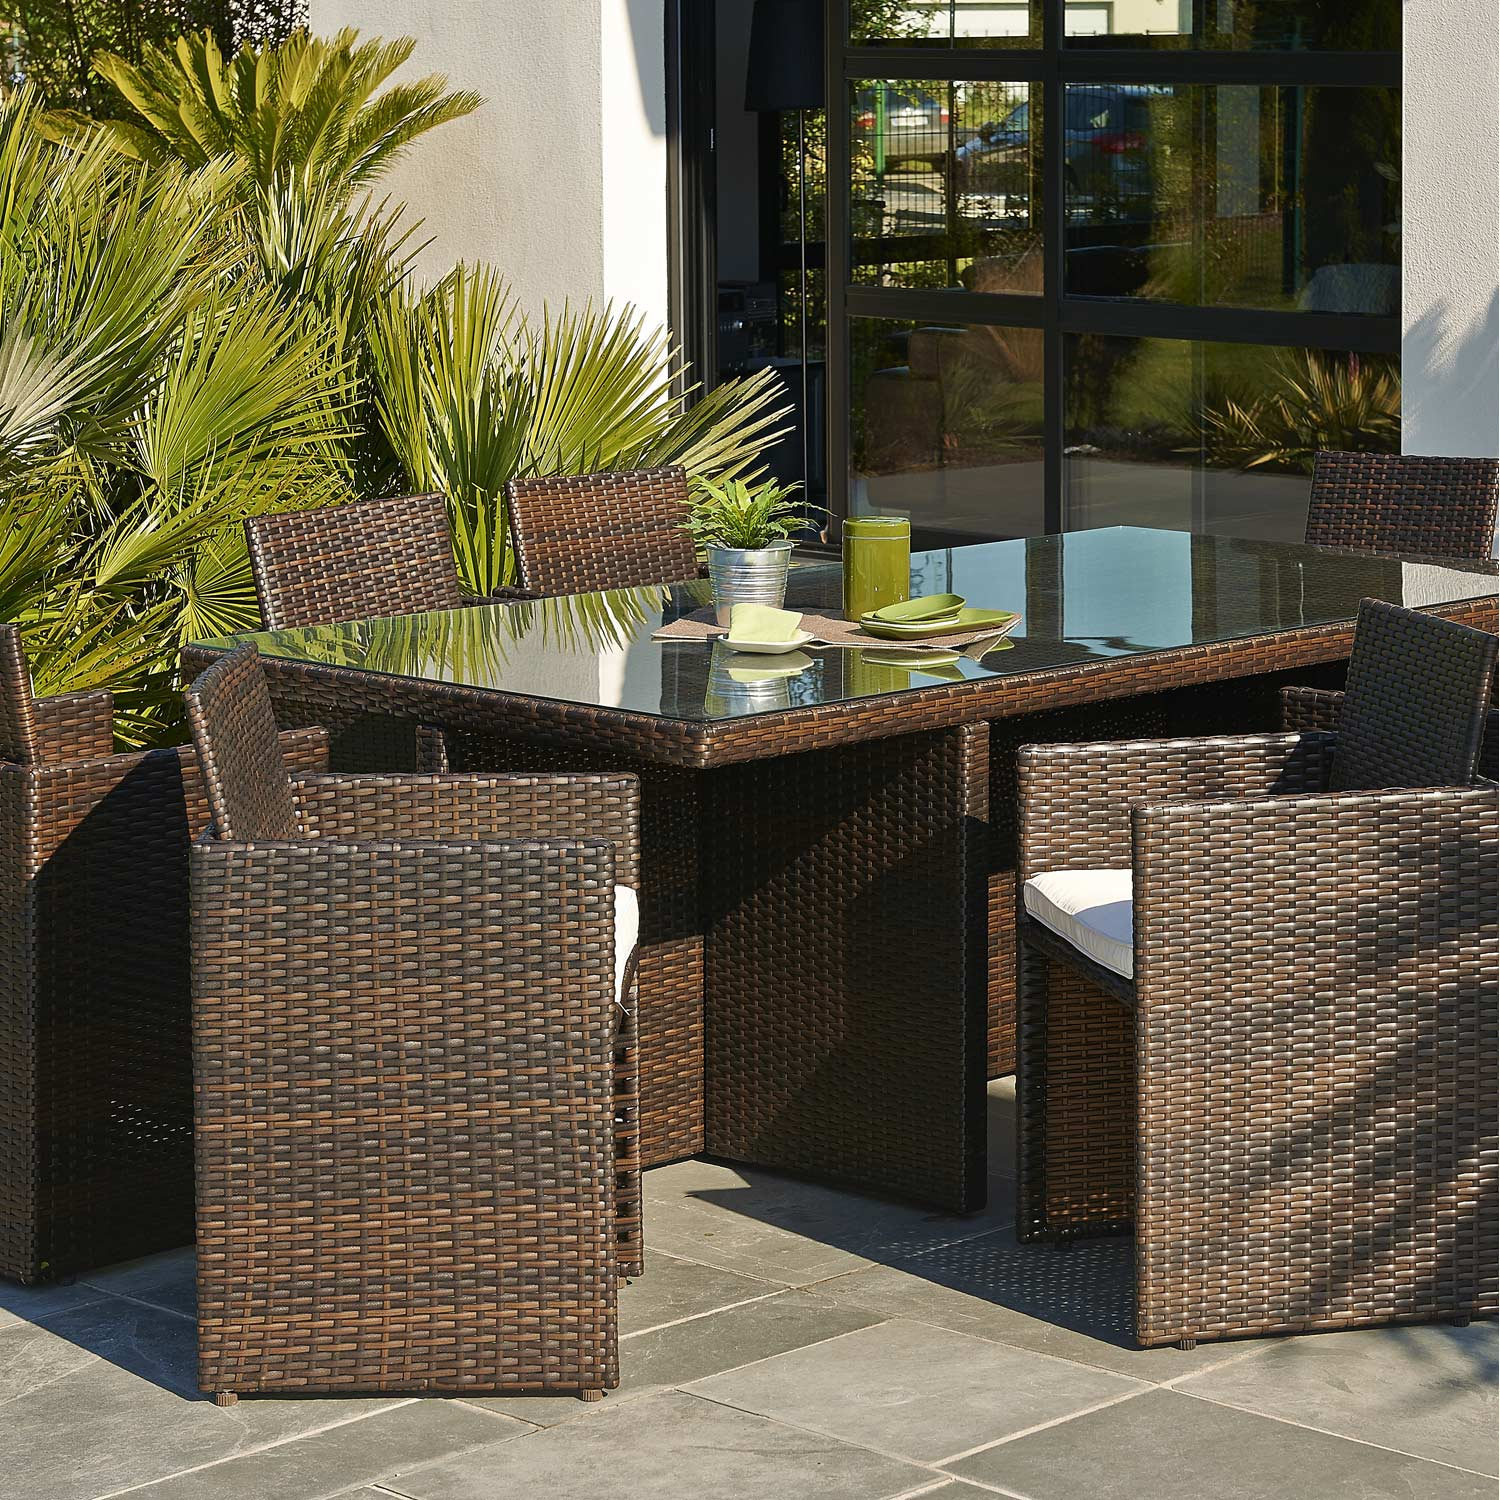 Salon de jardin encastrable r sine tress e marron 1 table for Salon de jardin resine tressee marron